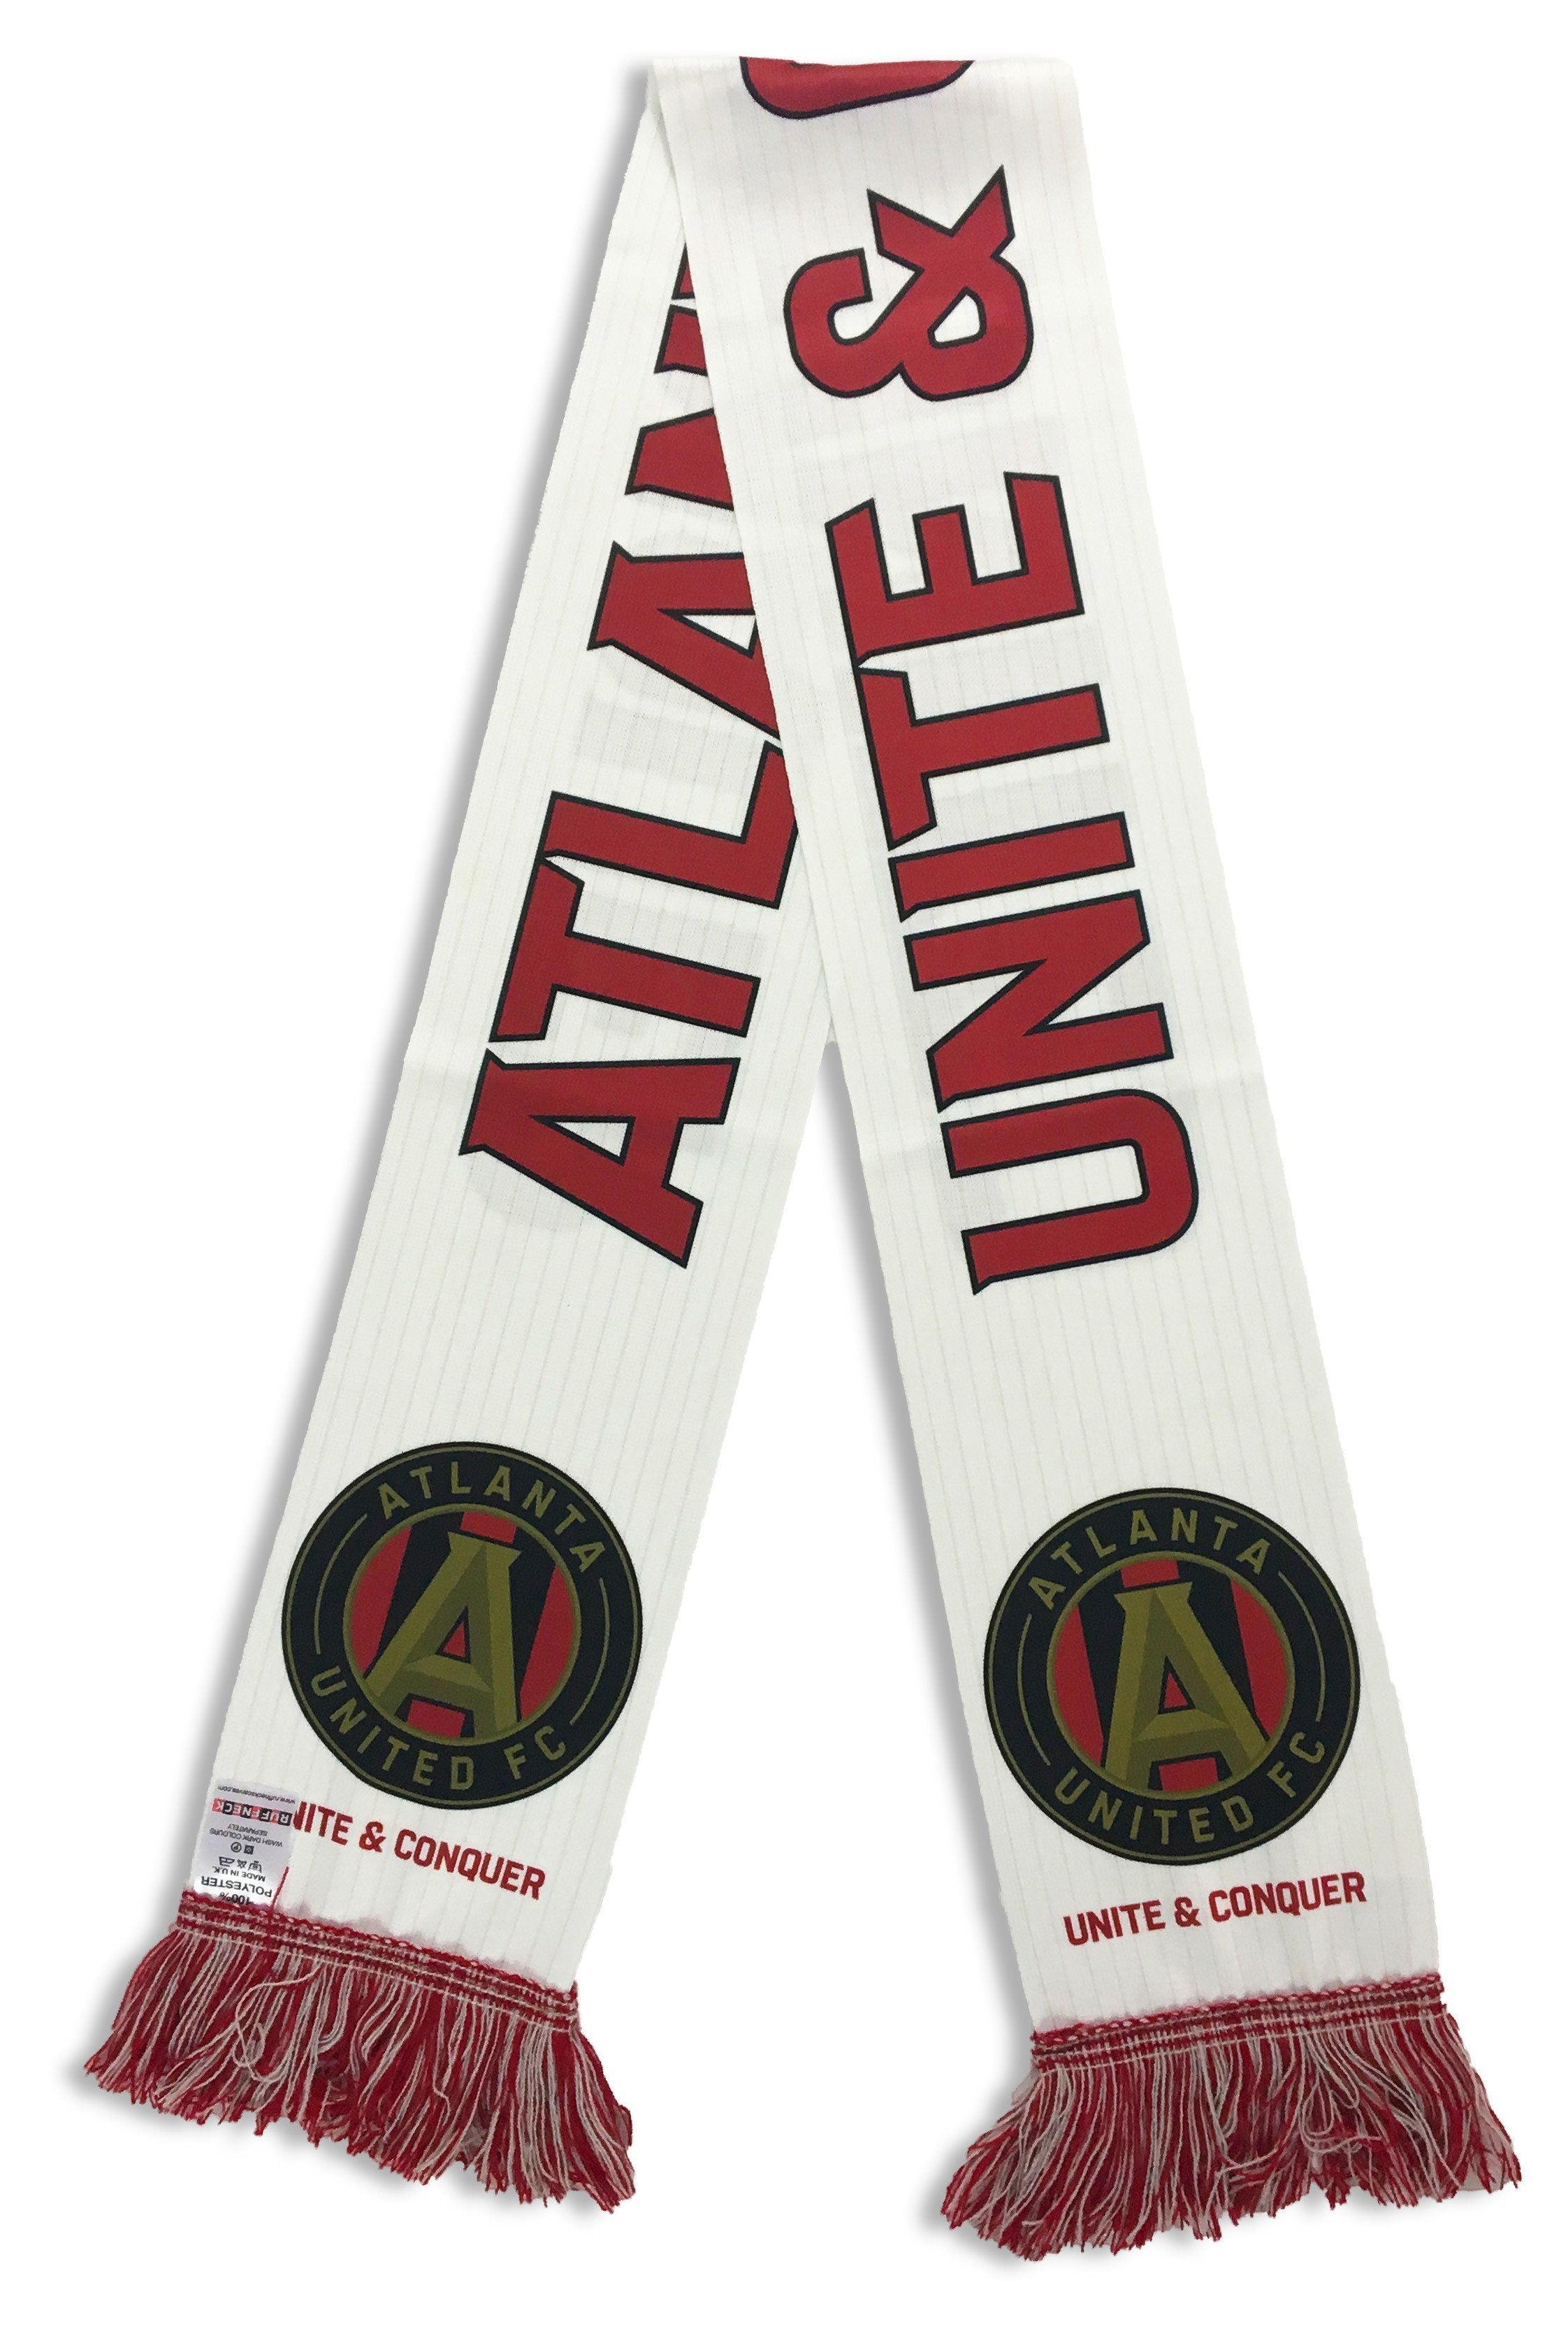 ATLANTA UNITED SCARF - Sublimated Pinstripe